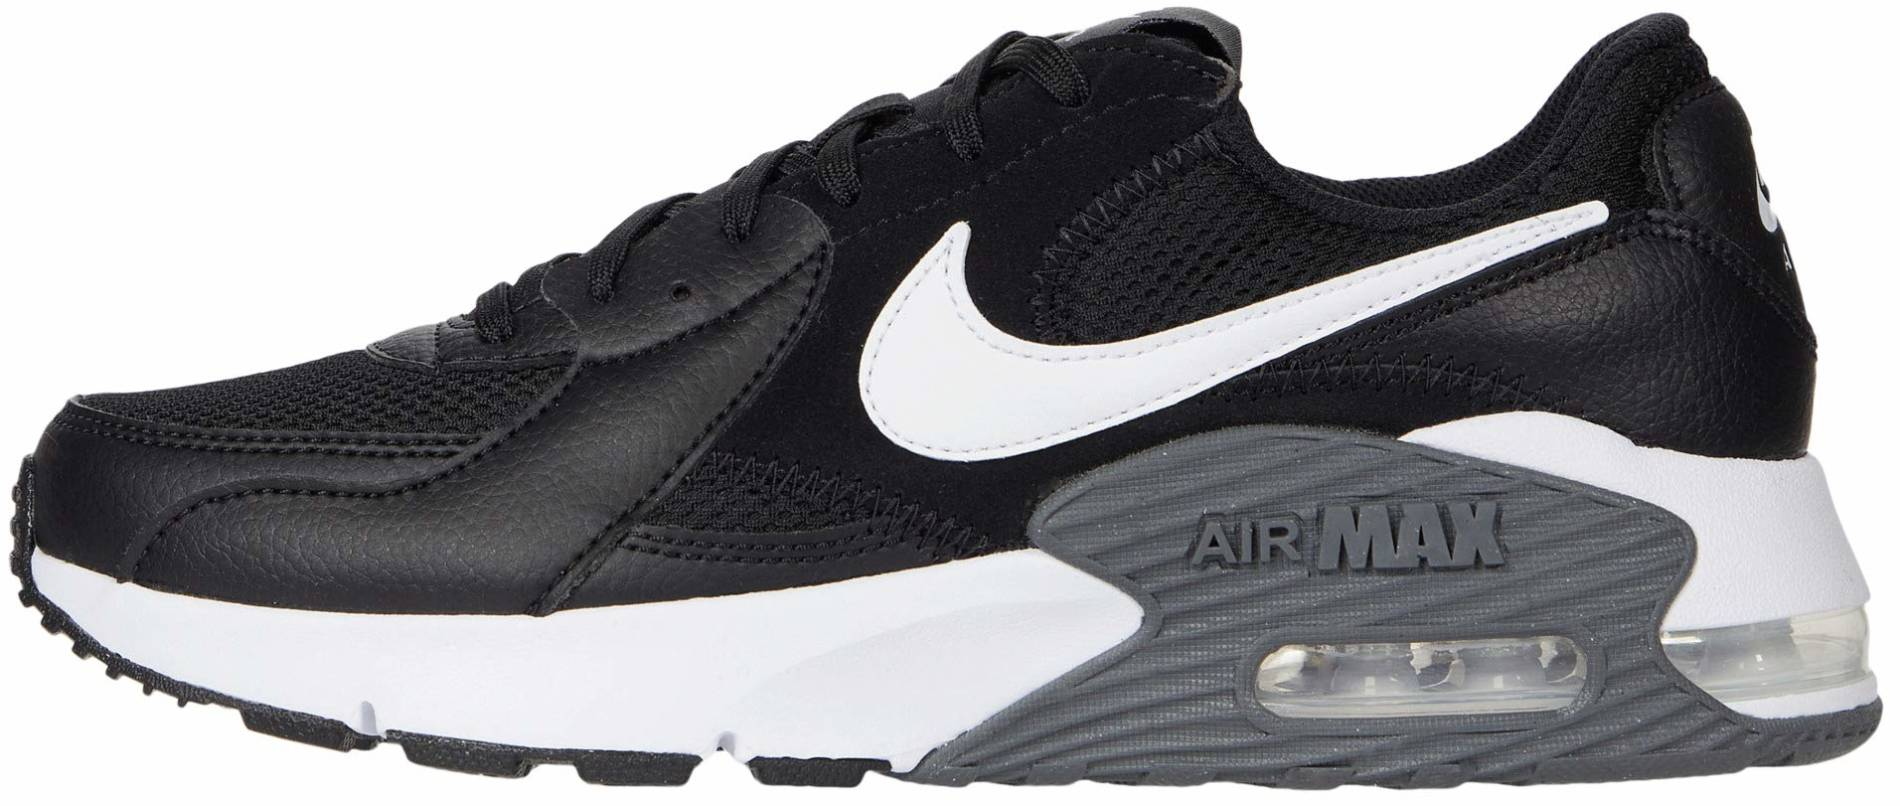 Nike Air Max Excee sneakers in 10 colors (only $84) | RunRepeat